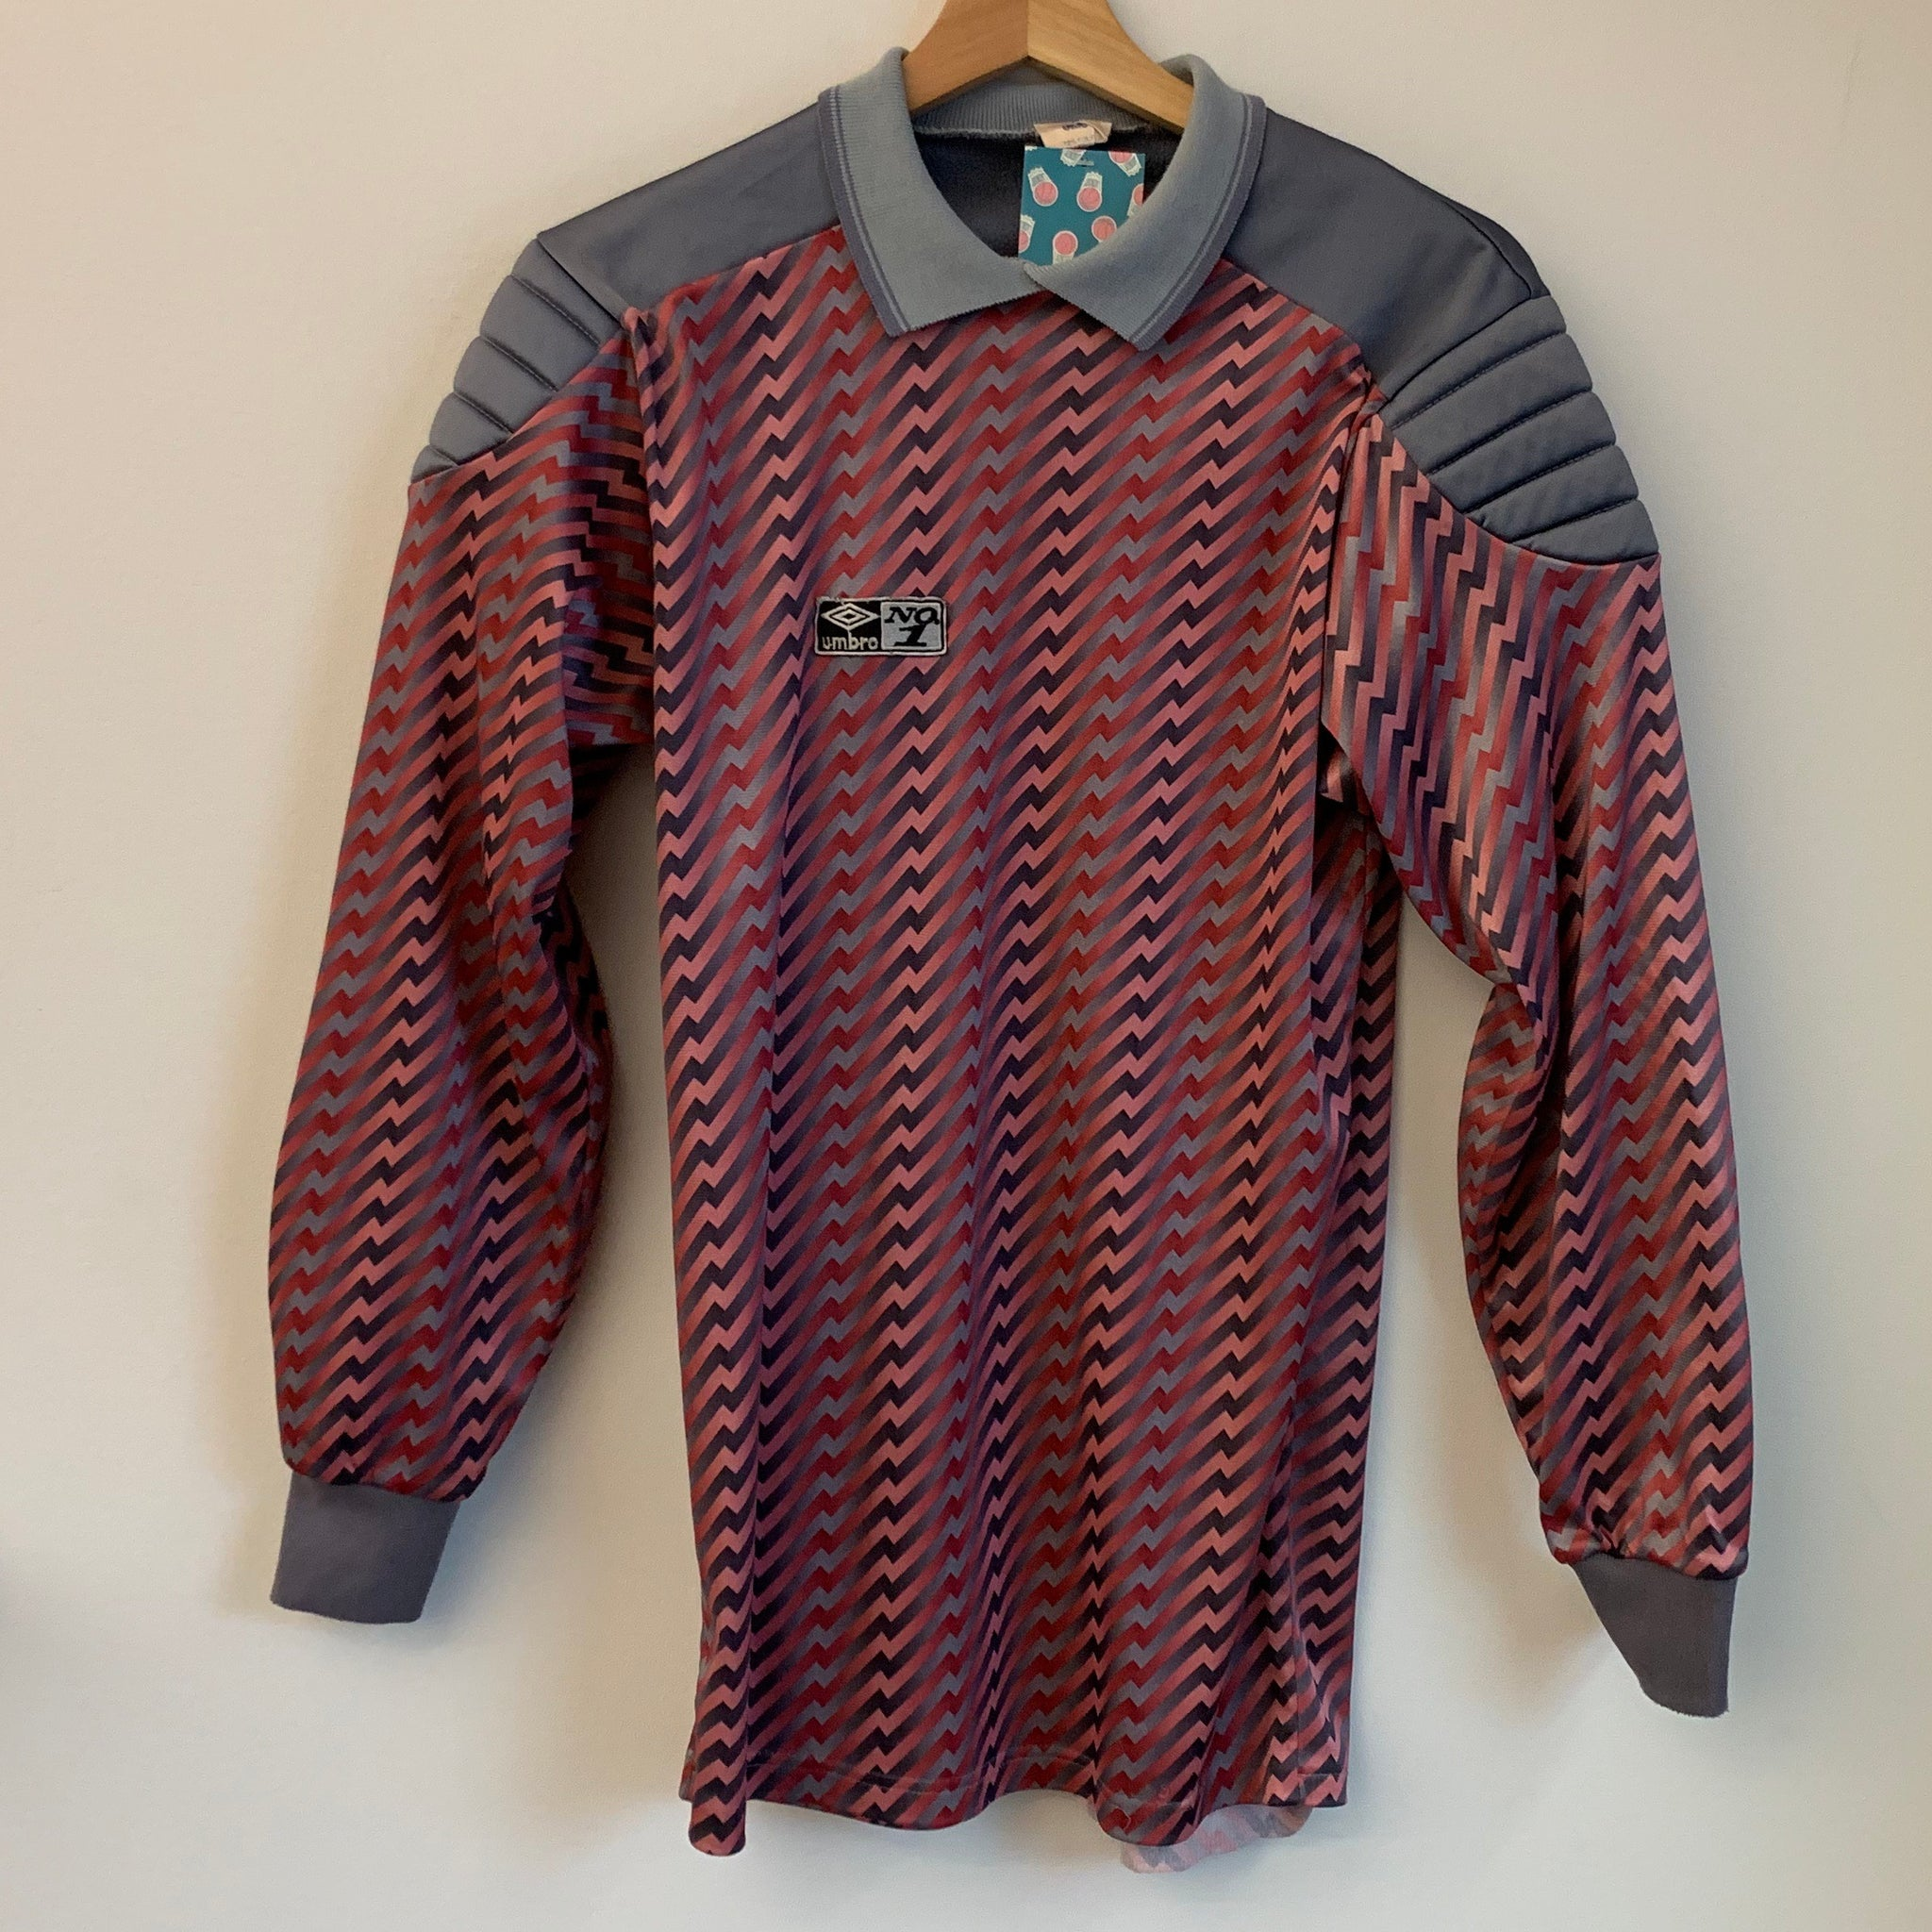 Umbro Goalkeeper Pattern Jersey